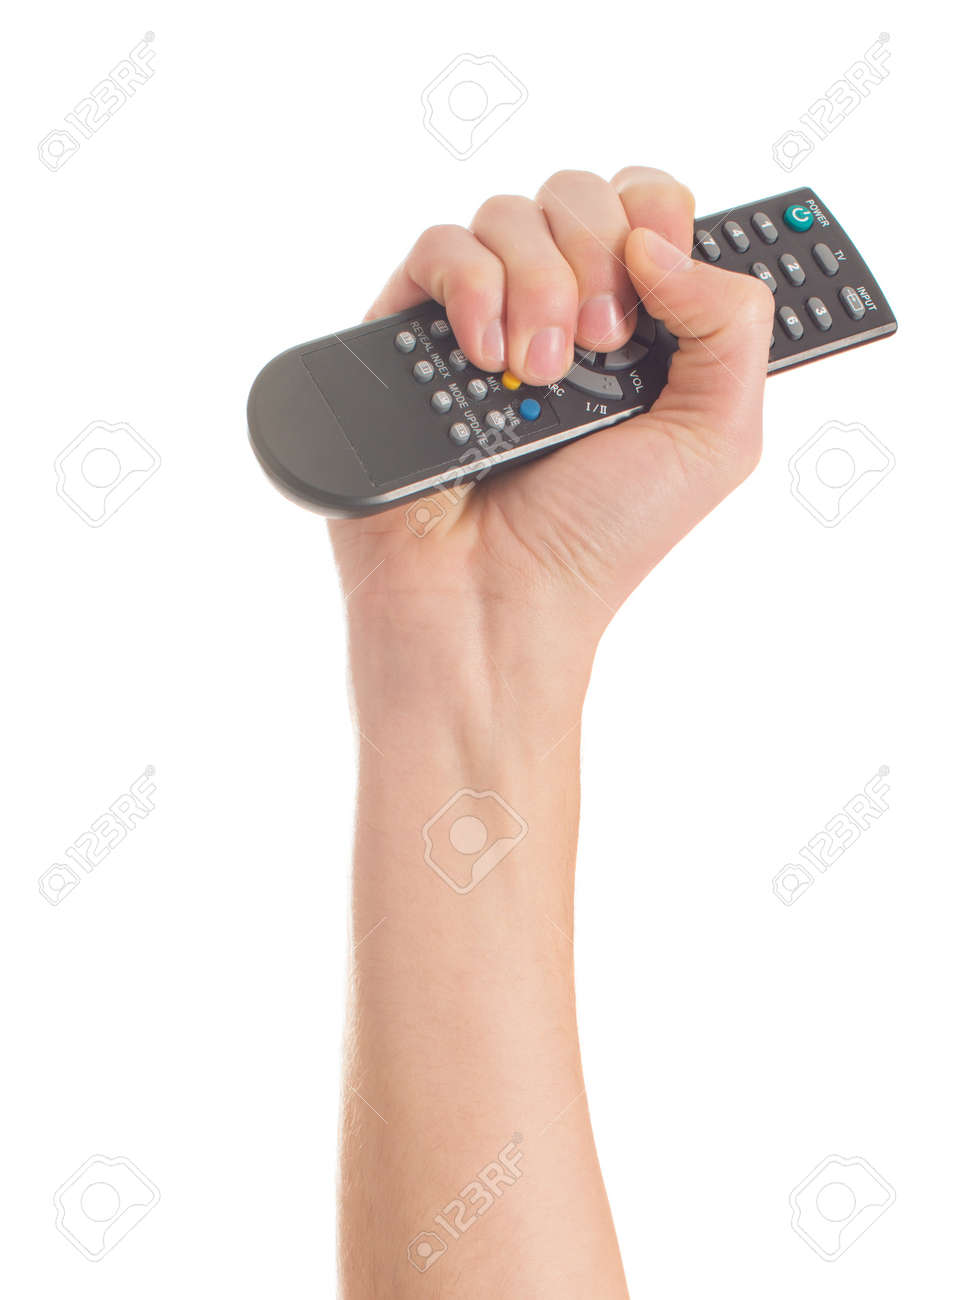 Close-up Of Human Hand Holding Remote Control On White Background Stock Photo - 22036784